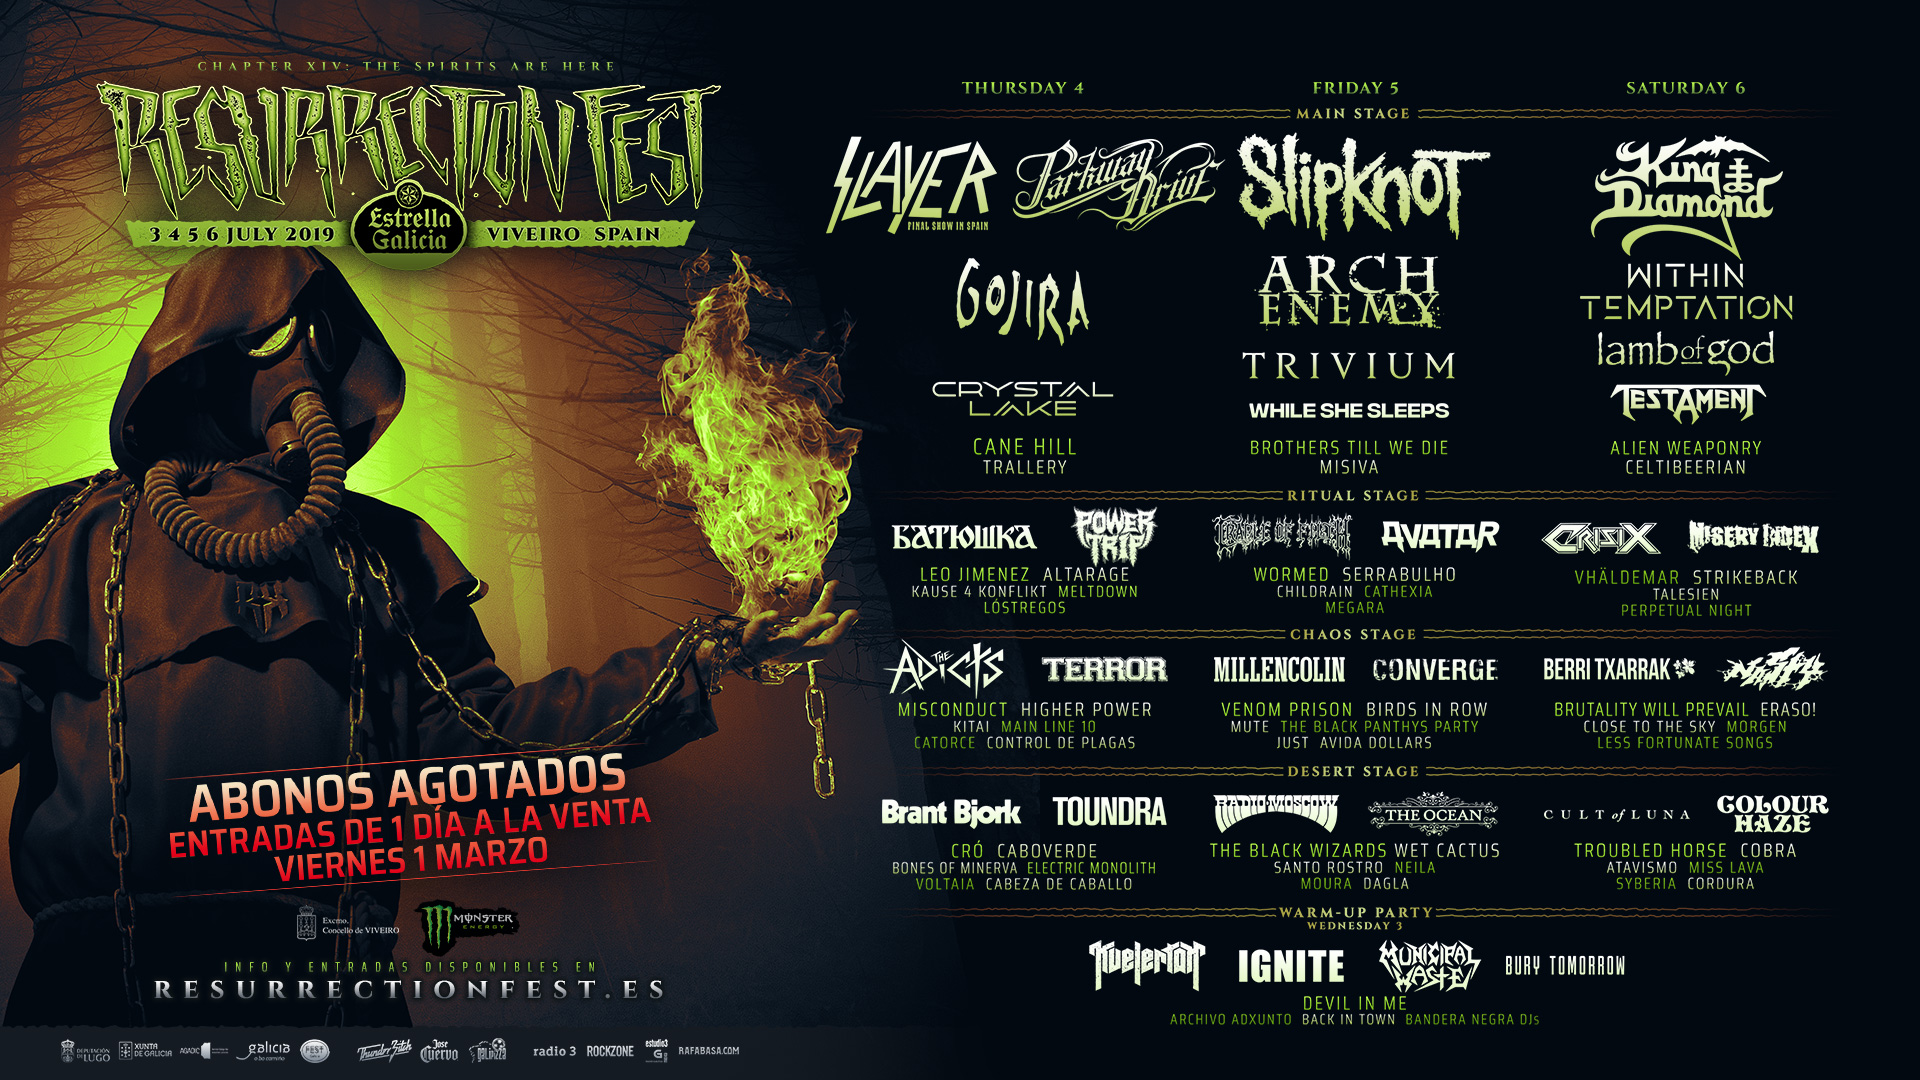 Resurrection-Fest-2019-Poster-Split-By-Days-Final